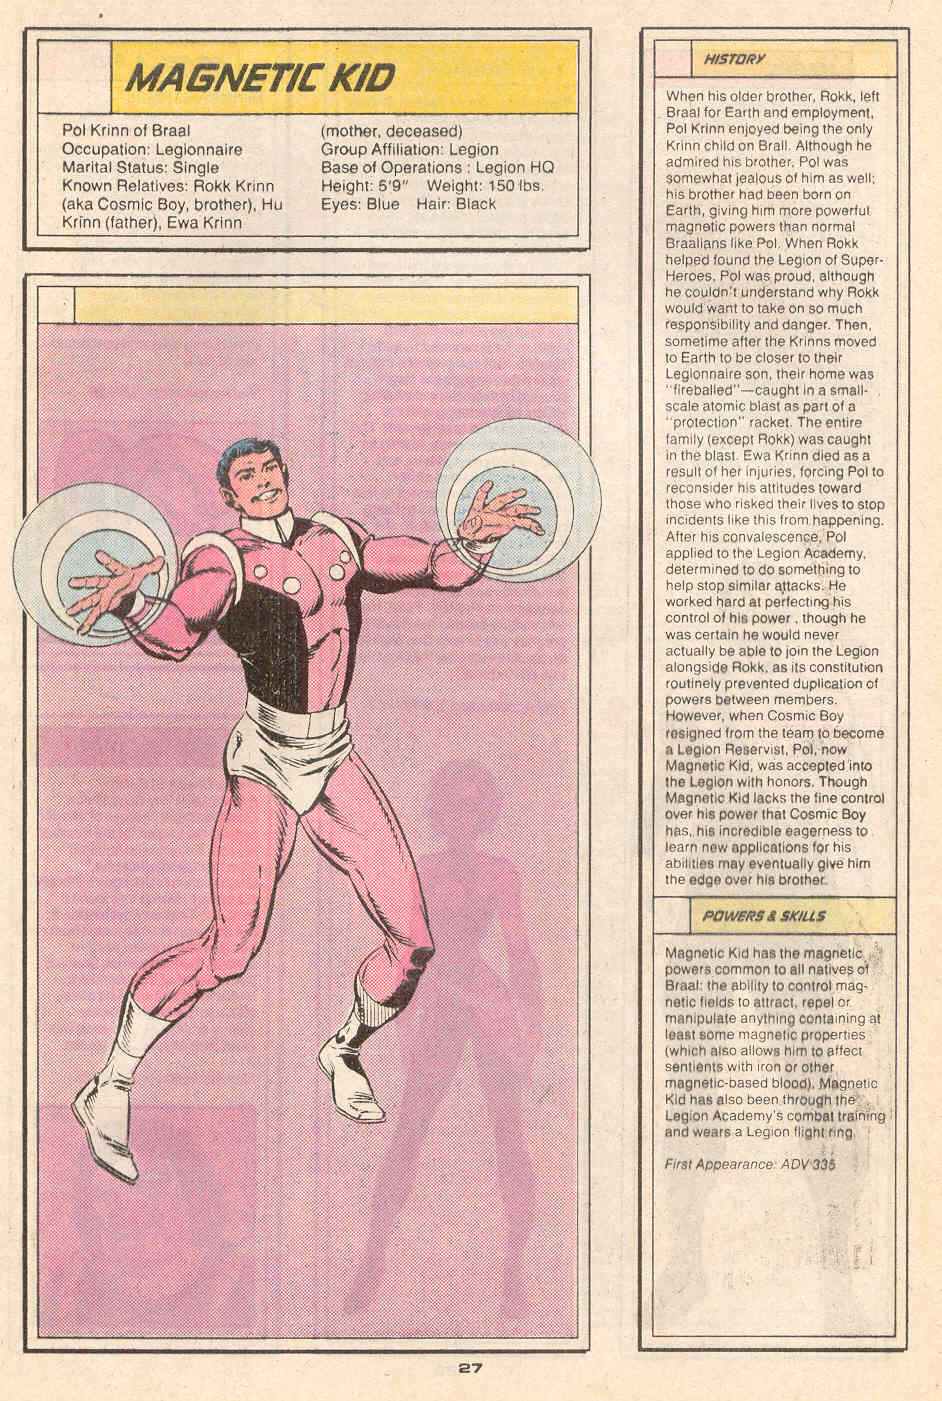 Magnetic Kid II by Richard Howell and Karl Kesel - Who's Who in the Legion of Super-Heroes #4